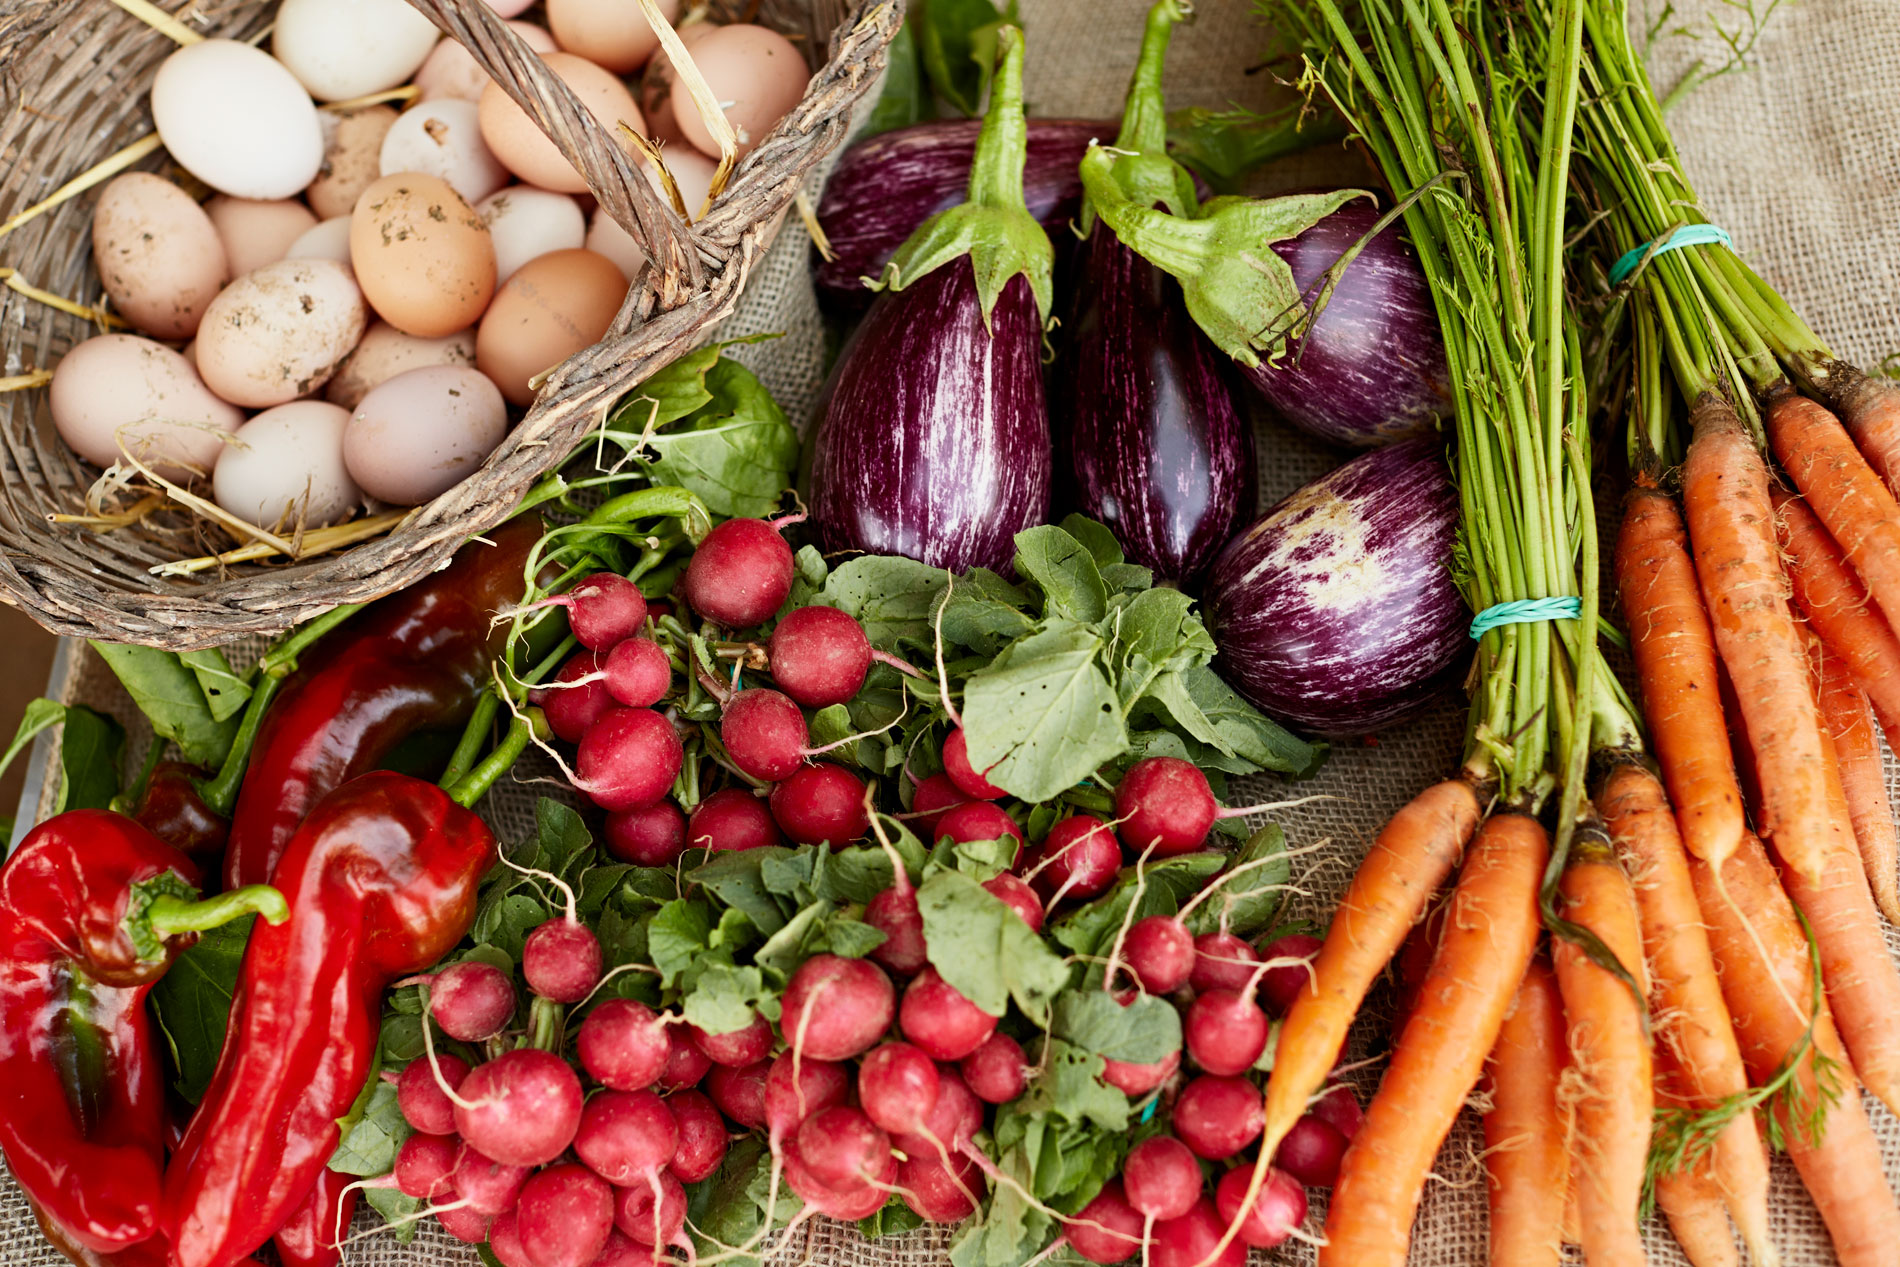 Picture of fresh produce and eggs